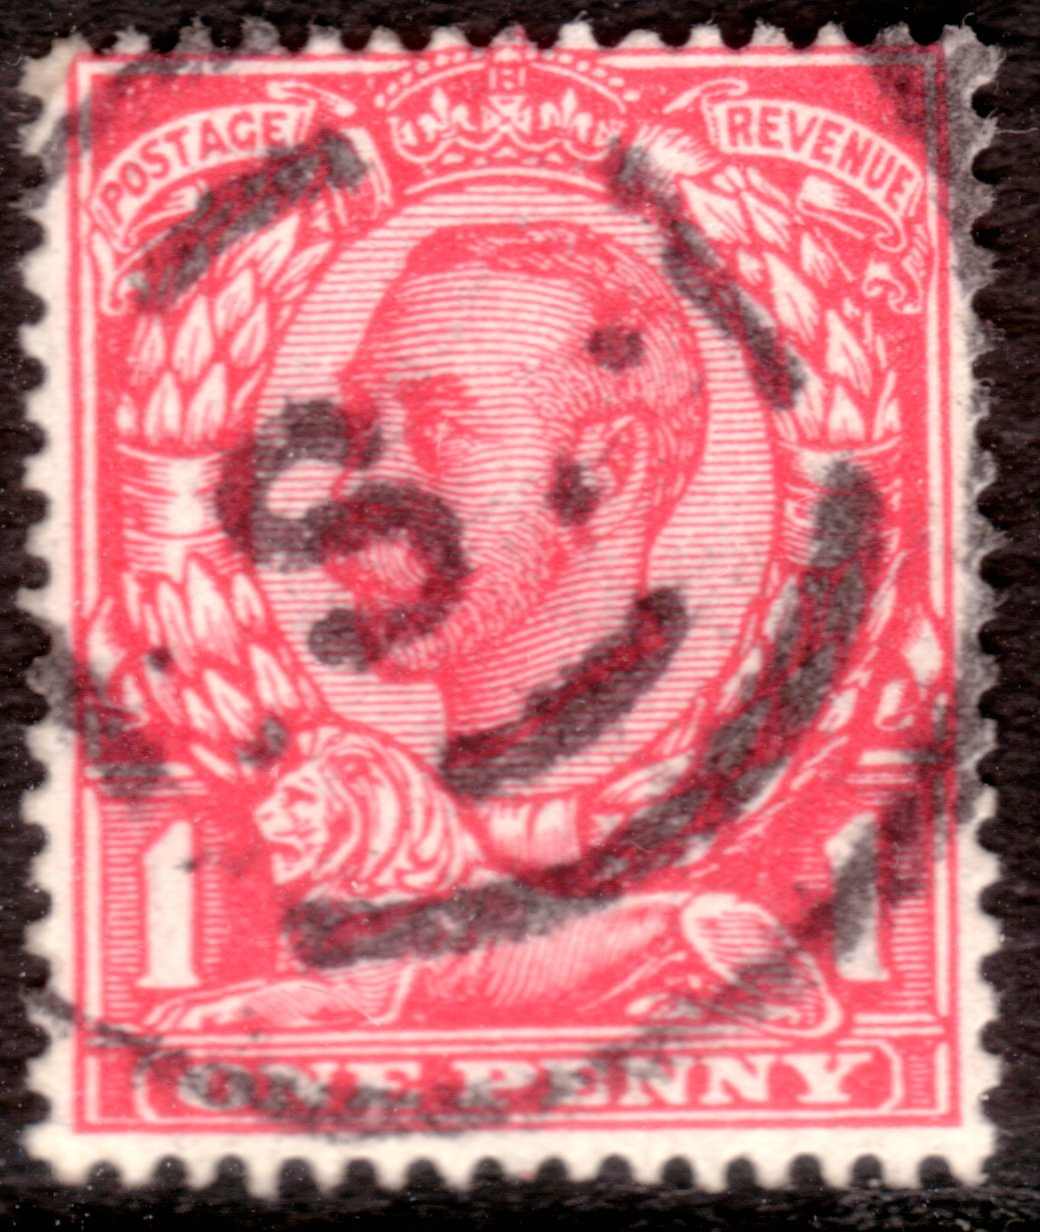 1912 1d downey experimental cancellation